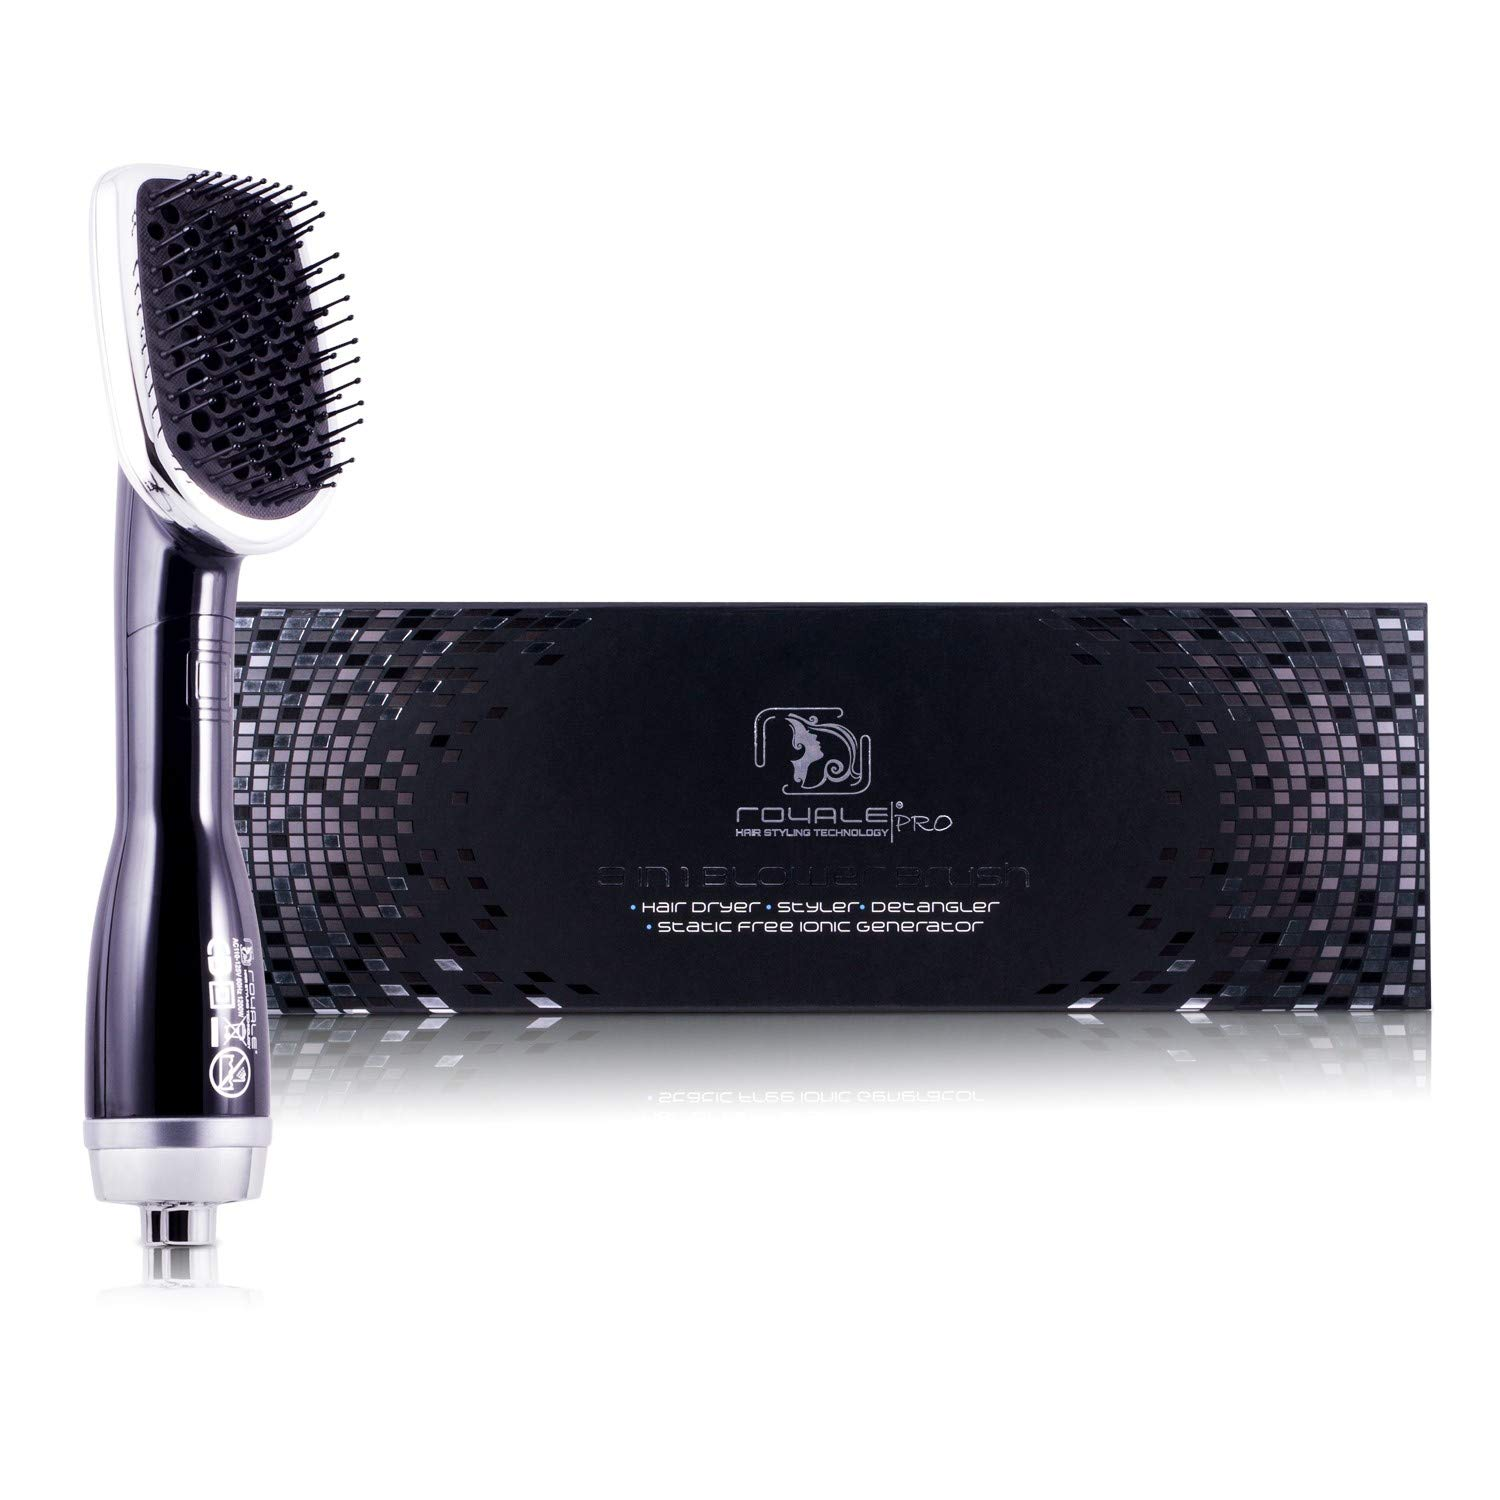 Professional Hairstyling Royale 3 in one Blower Brush 2000 Set - Interchangeable Attachments - Volumizes, Straightens and Curls - Tourmaline Technology - Black